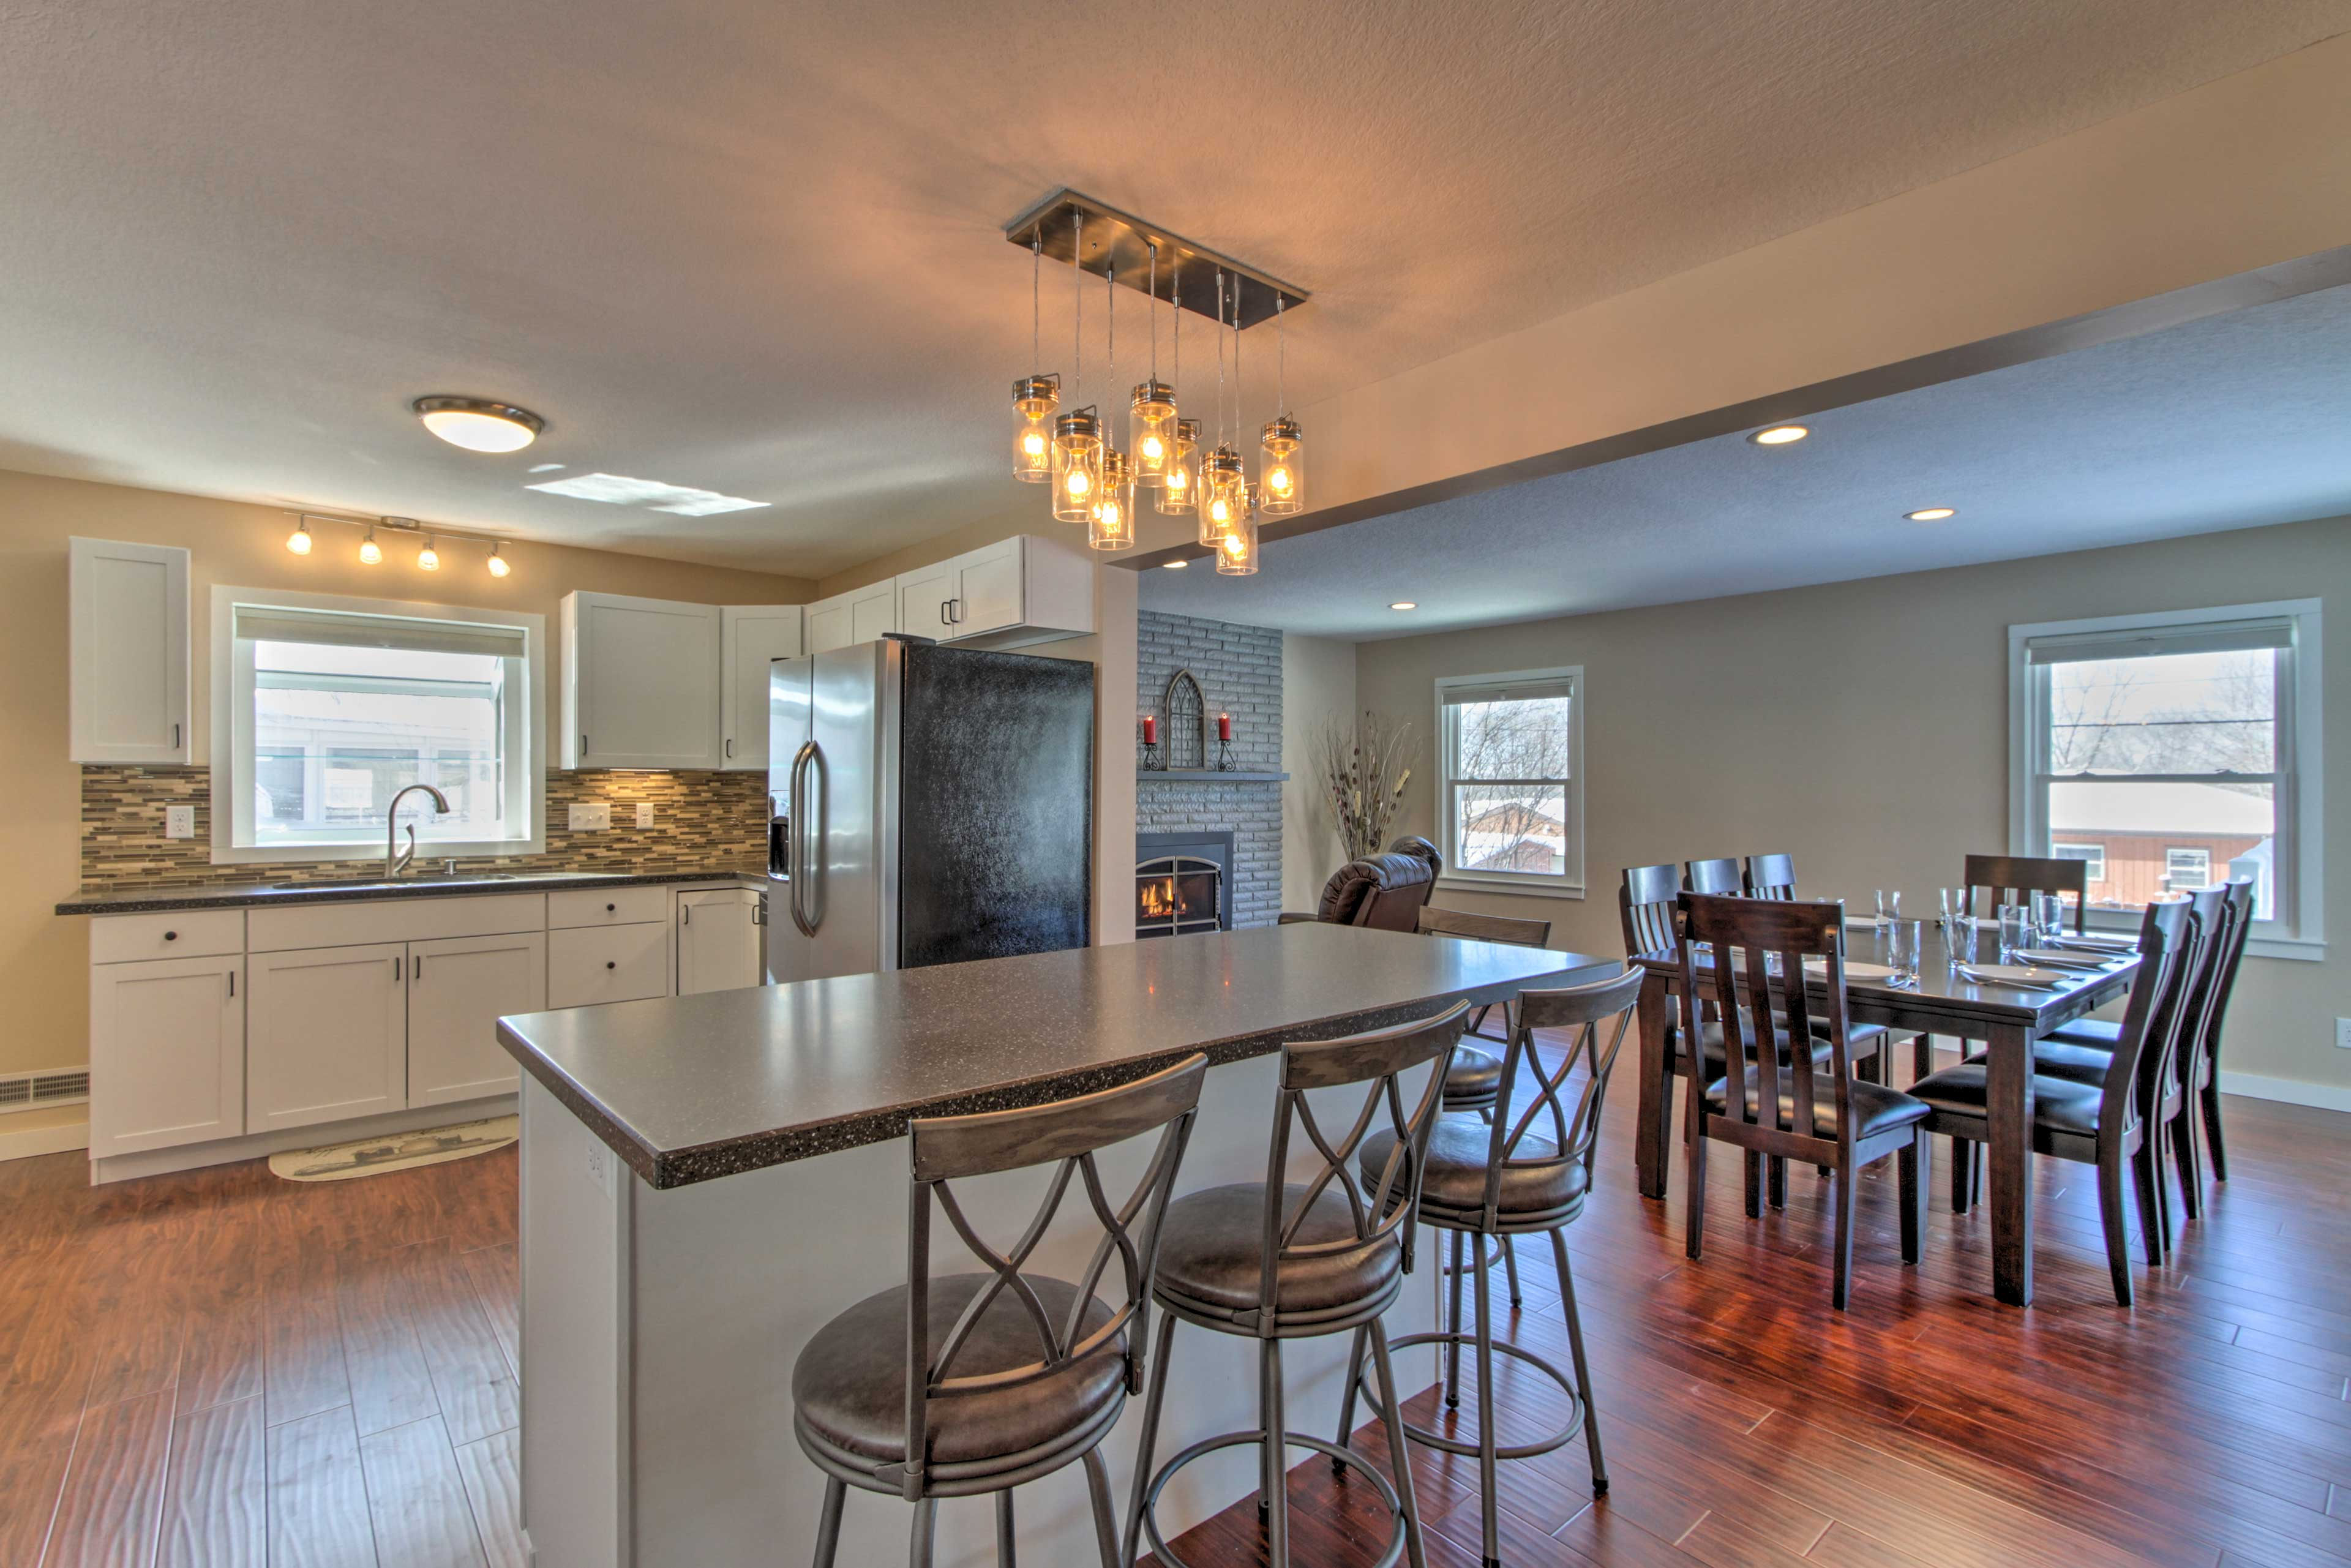 This 3-bedroom, 2.5-bath vacation rental offers all the comforts of home.